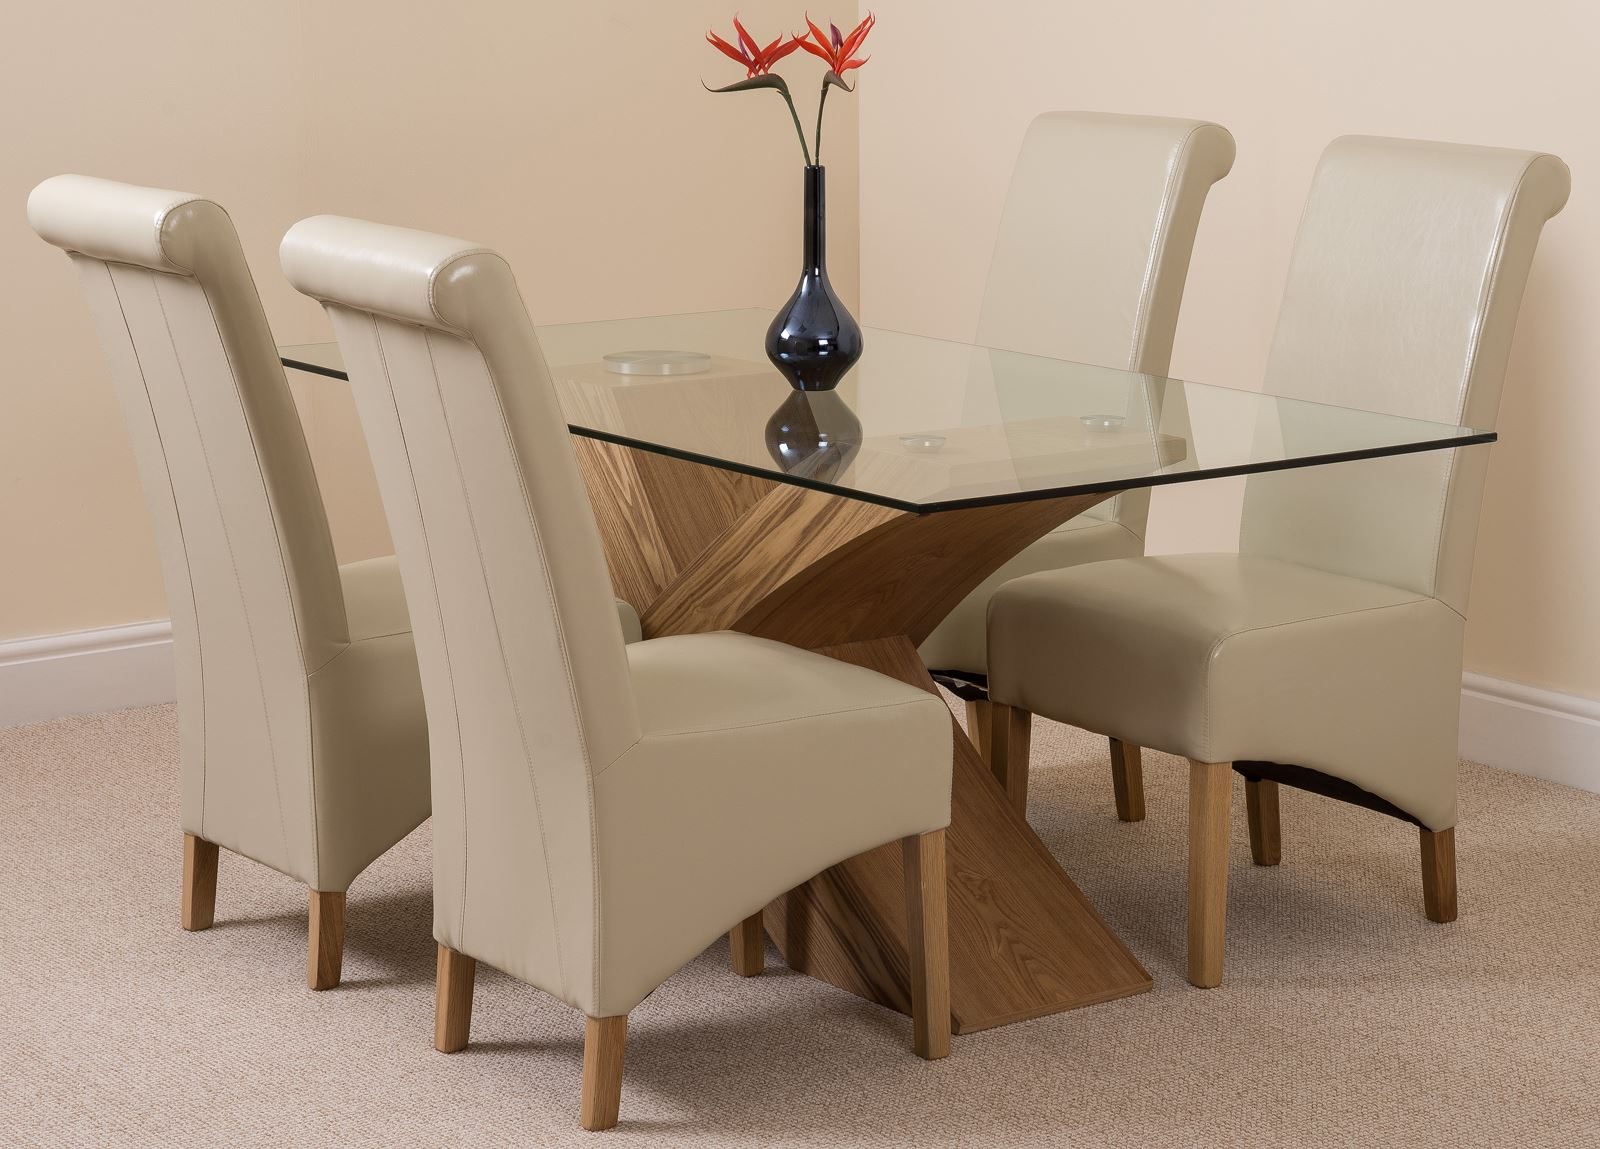 glass and wood dining table chairs childrens wooden valencia small oak 160cm modern 4